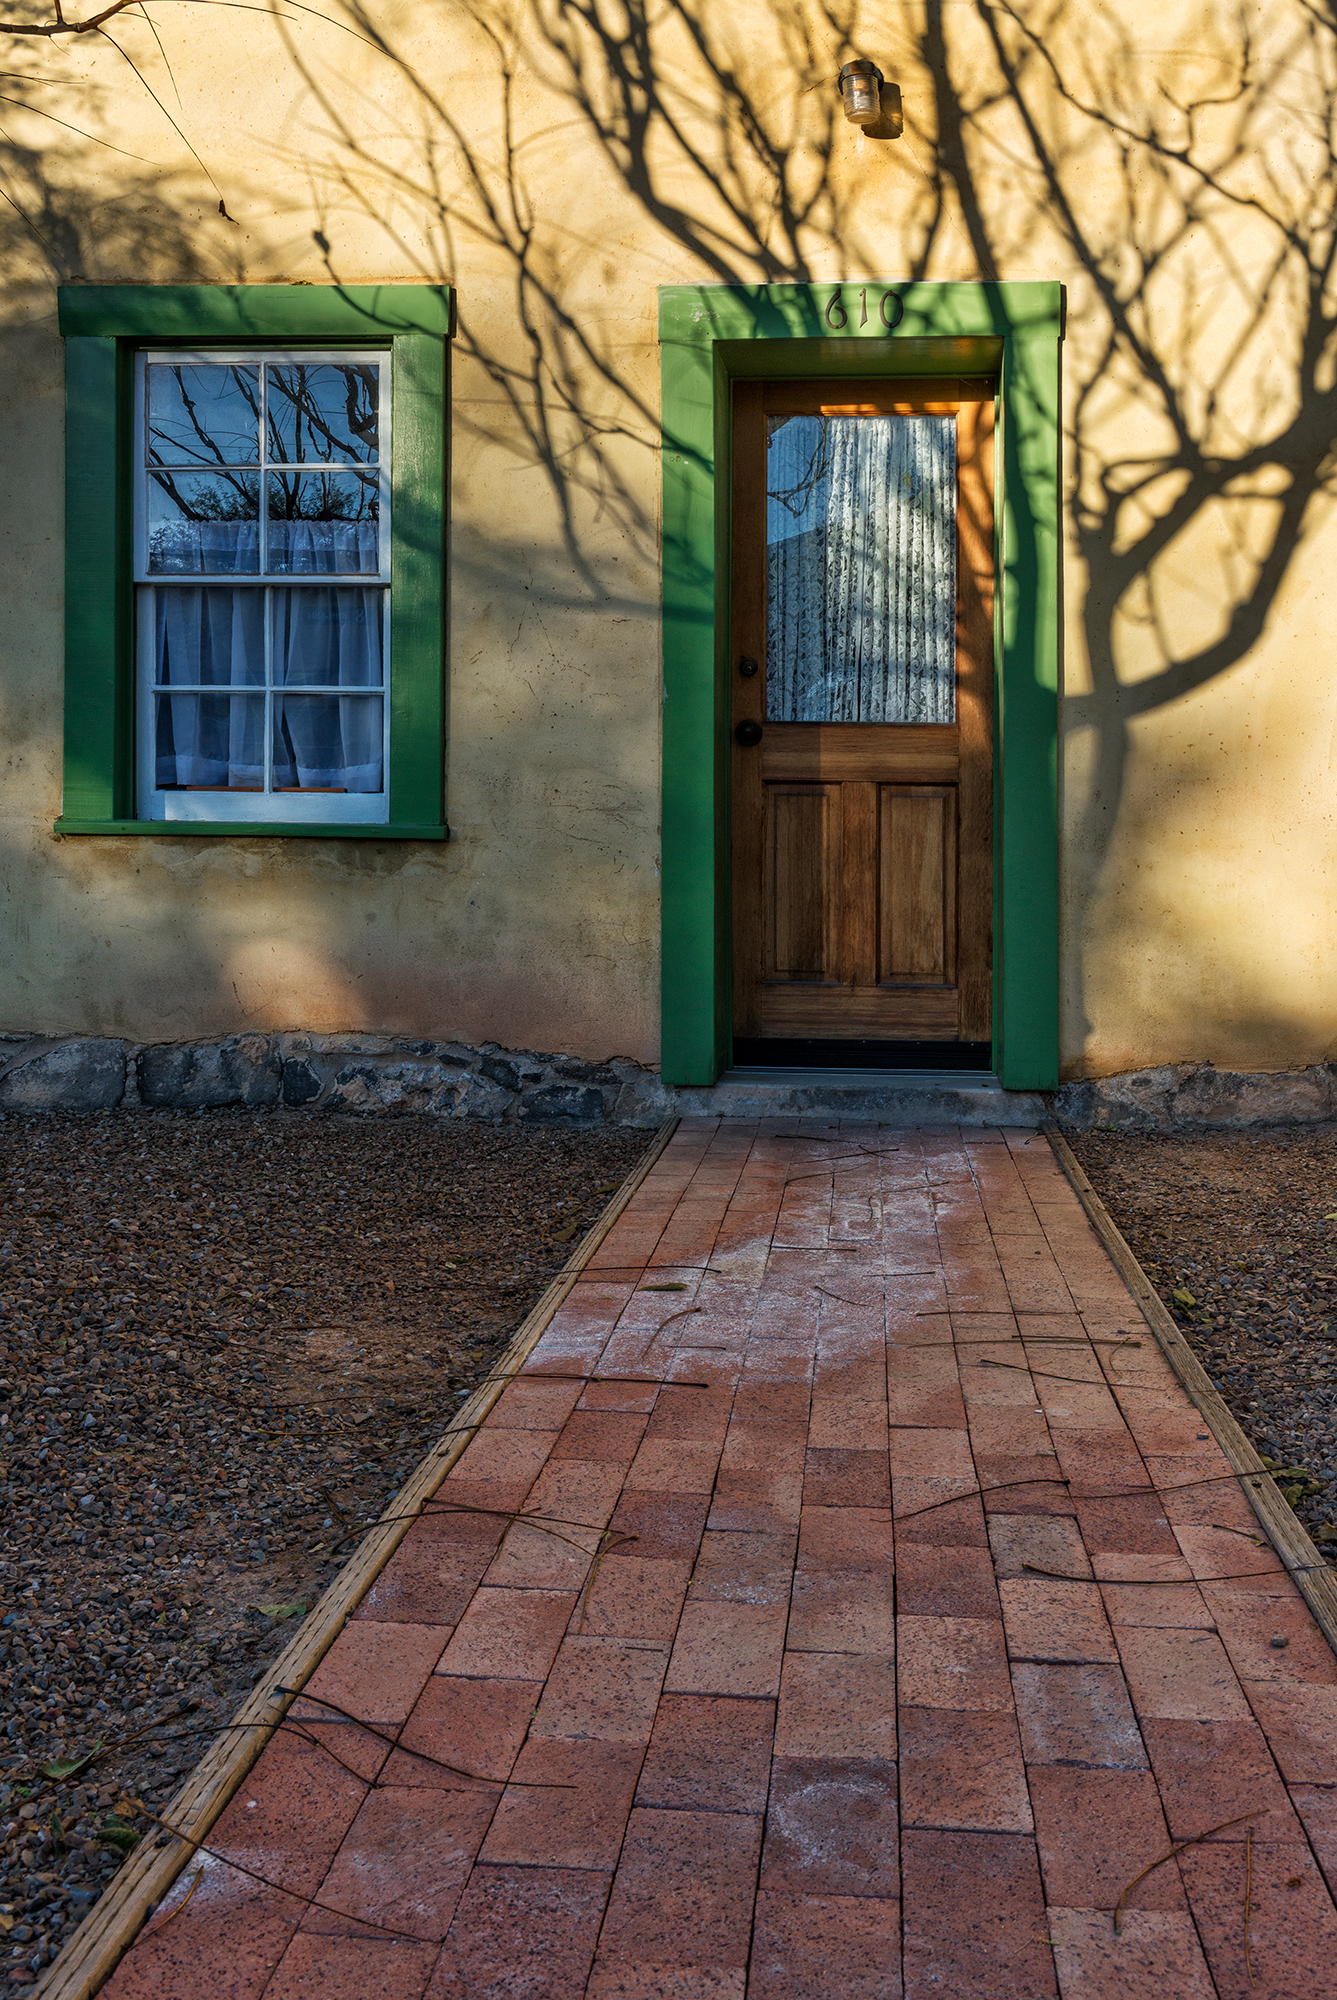 Green Trim. Tucson, Arizona, 2015